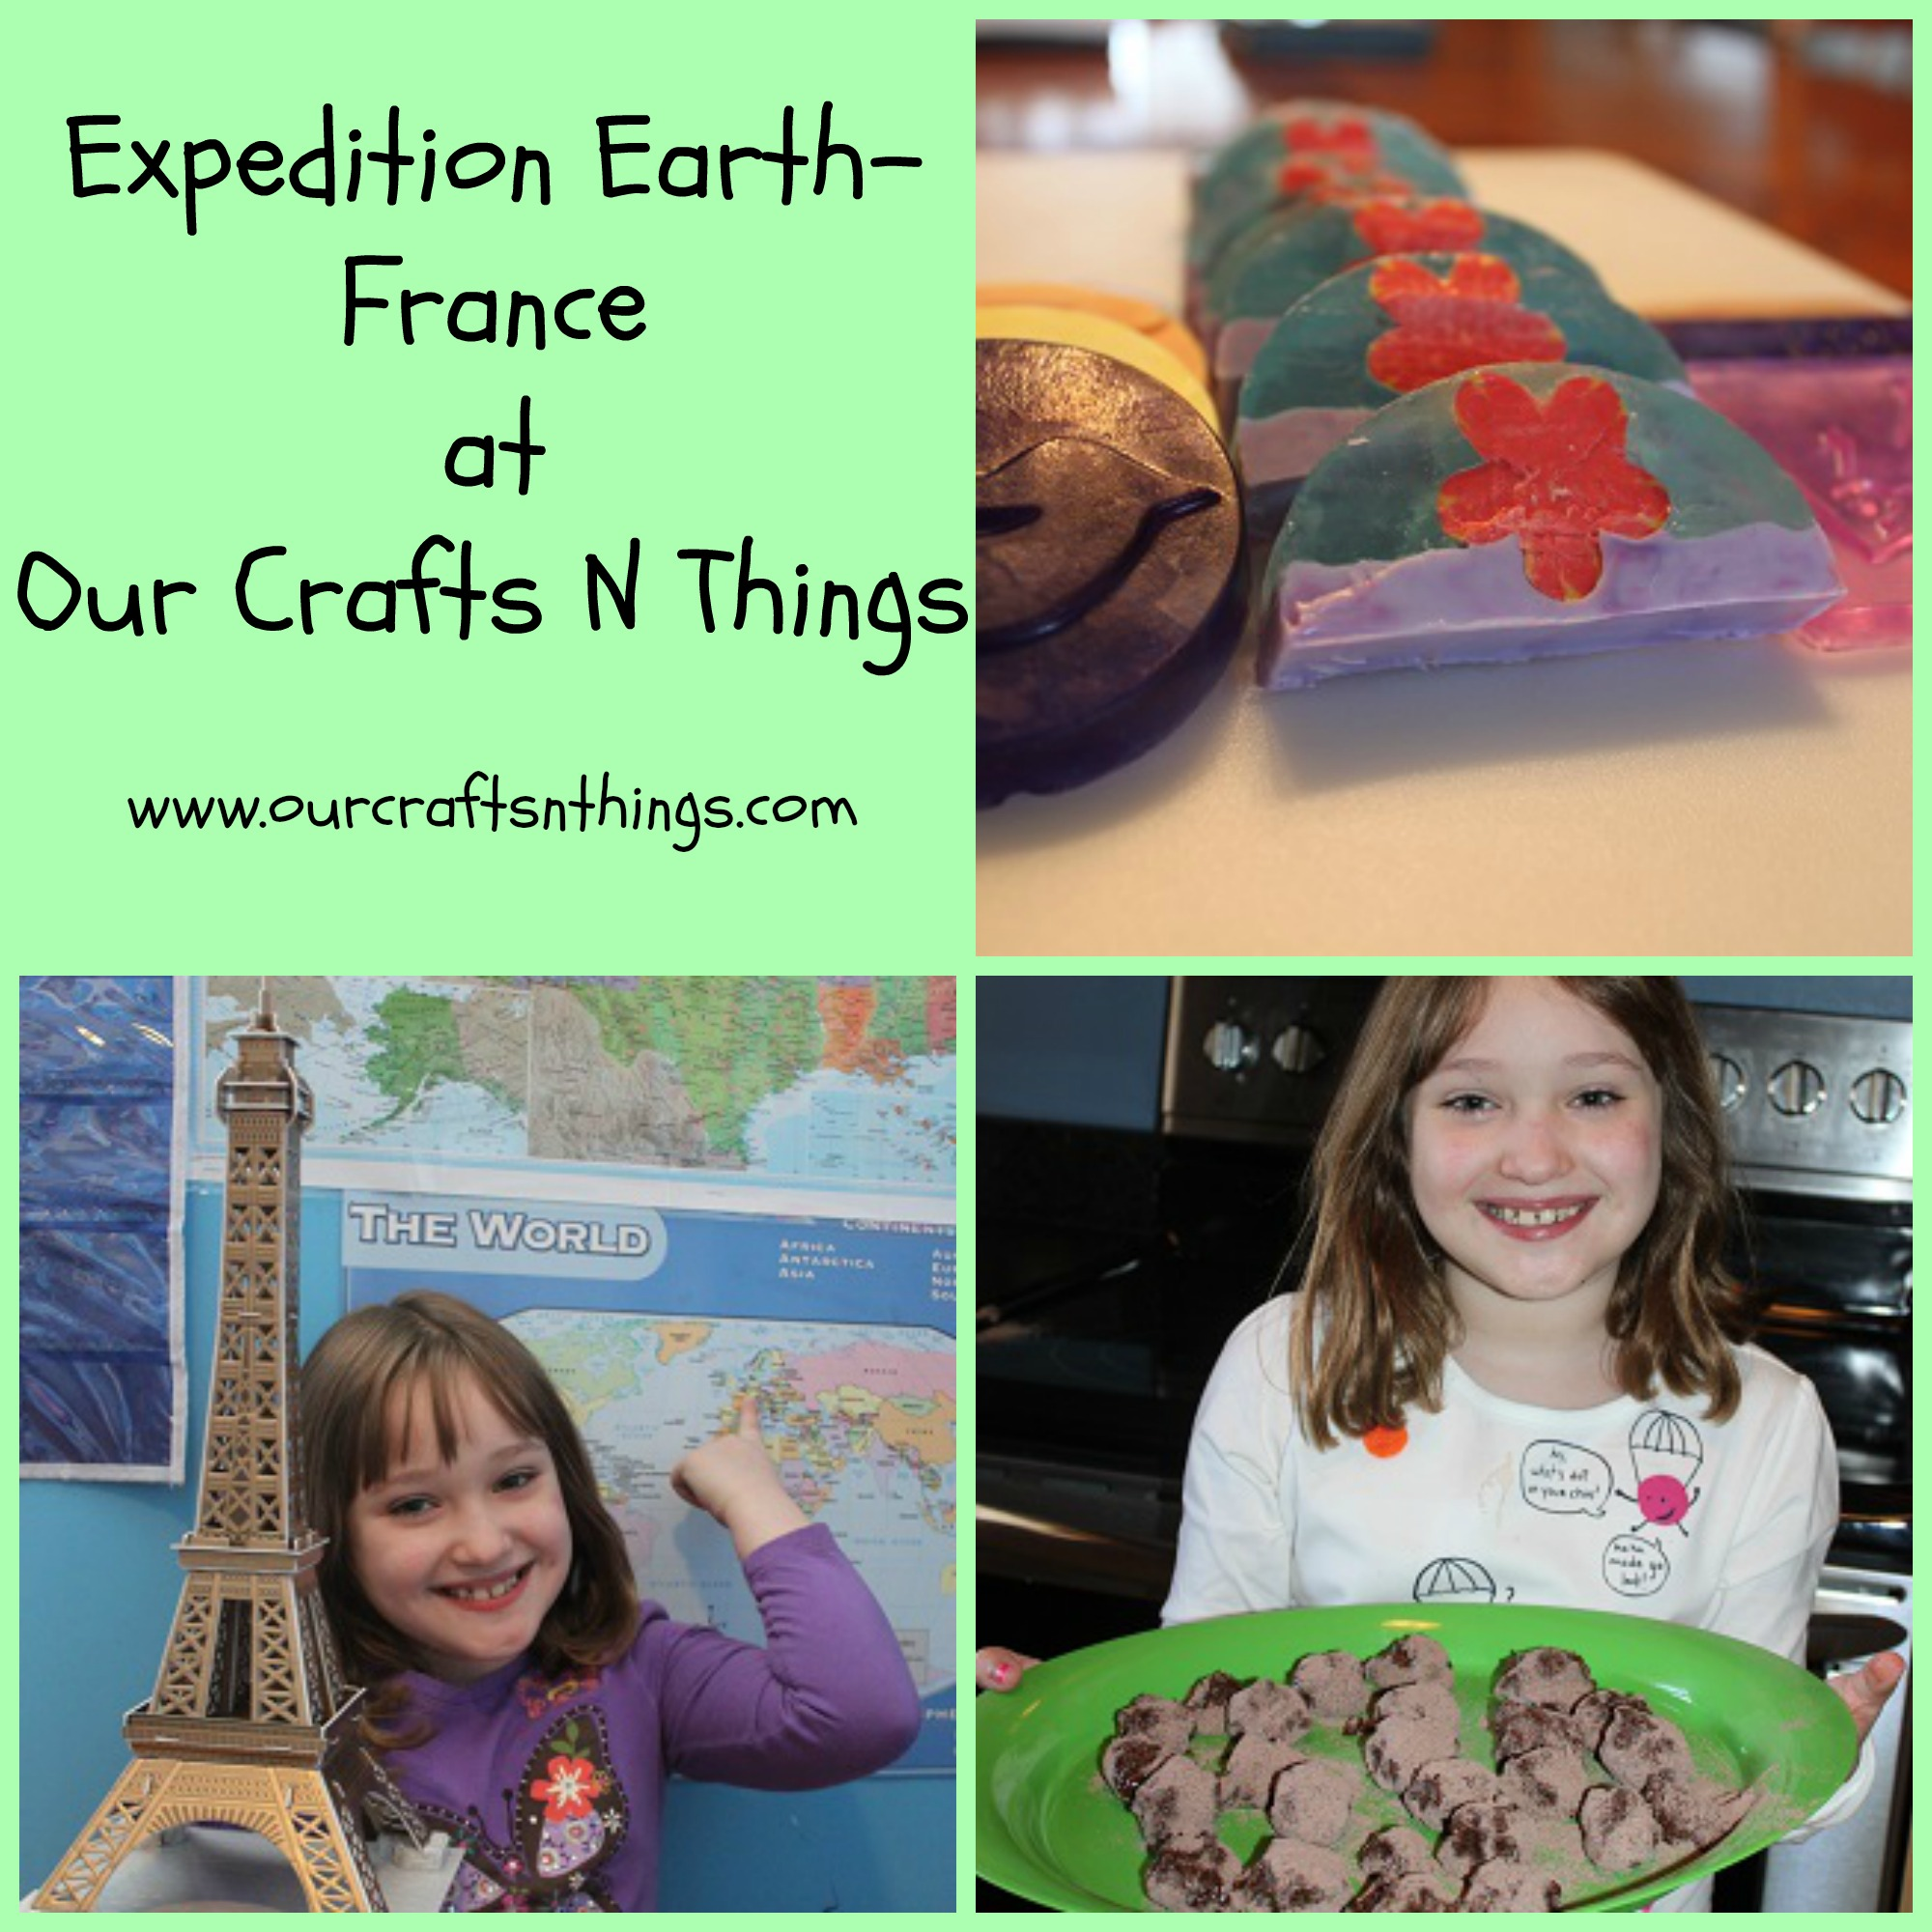 Expedition Earth- France